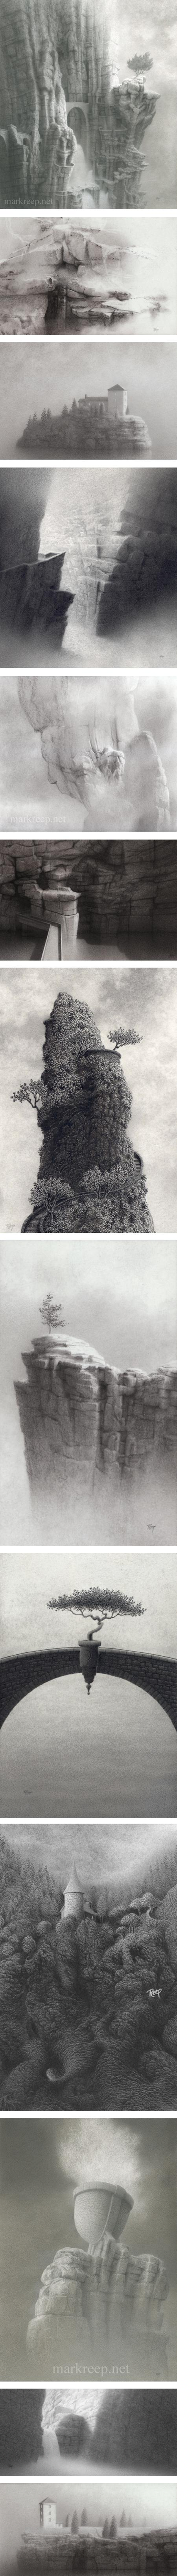 Mark Reep, imaginary landscape drawings in pencil ink and charcoal